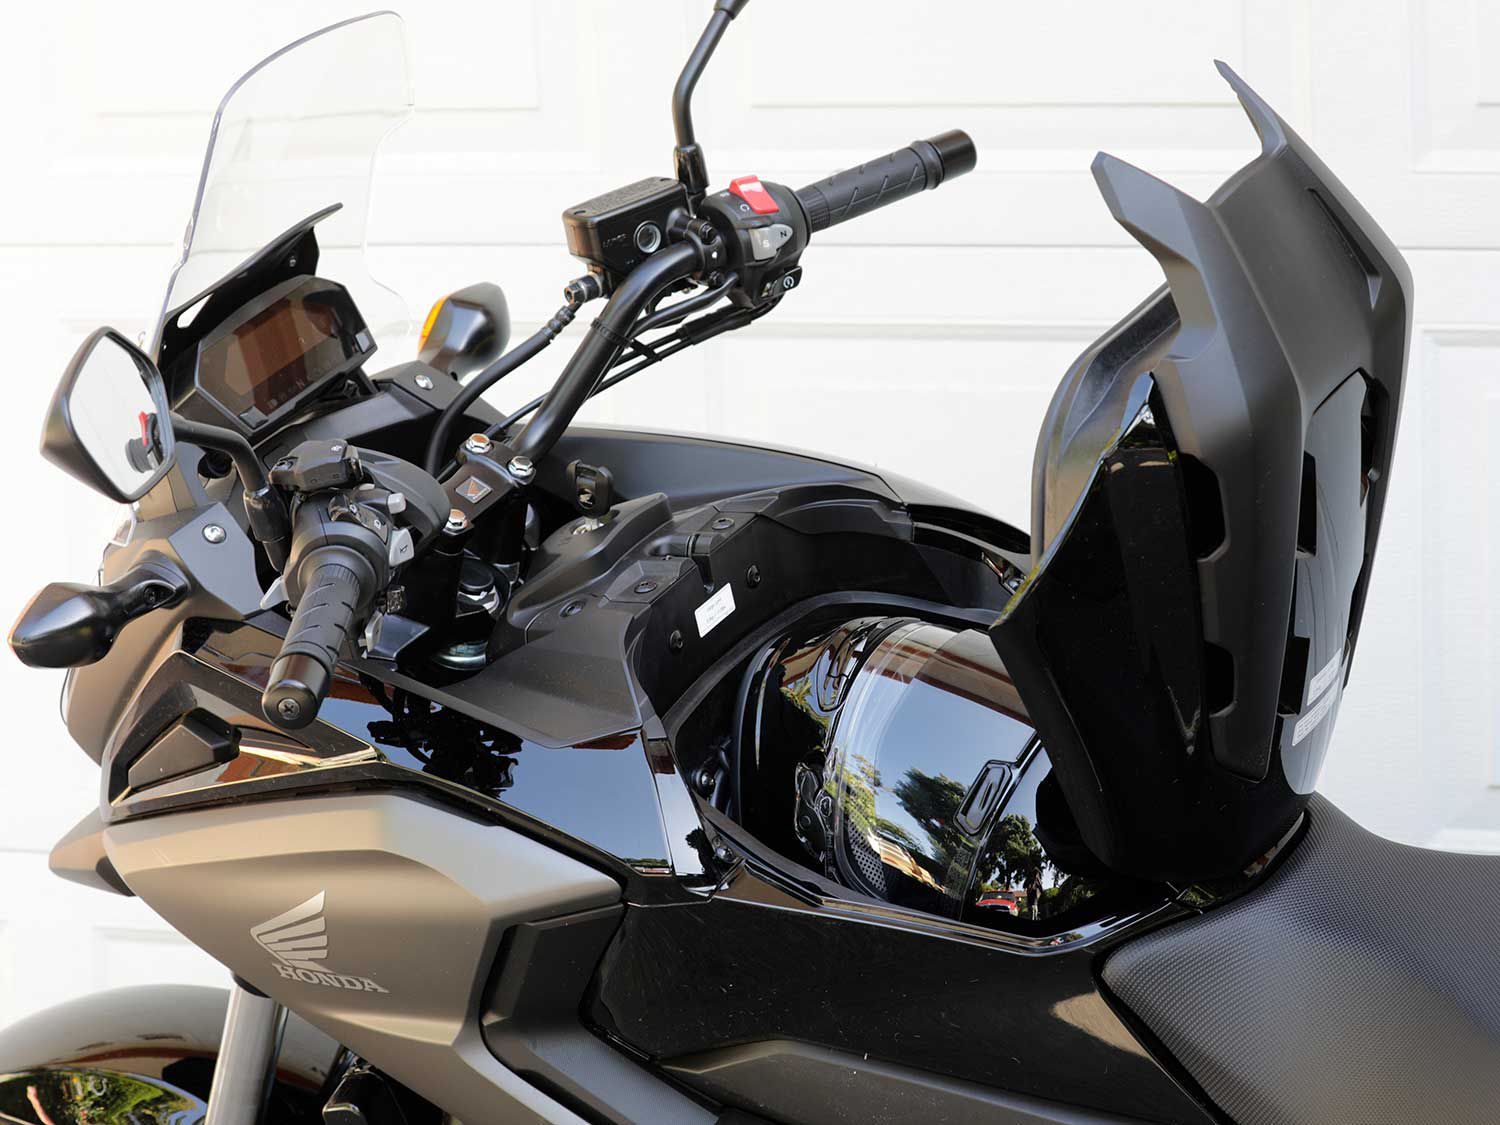 One of our favorite features is the NC750X's lockable storage compartment capable of swallowing a full-face motorcycle helmet.